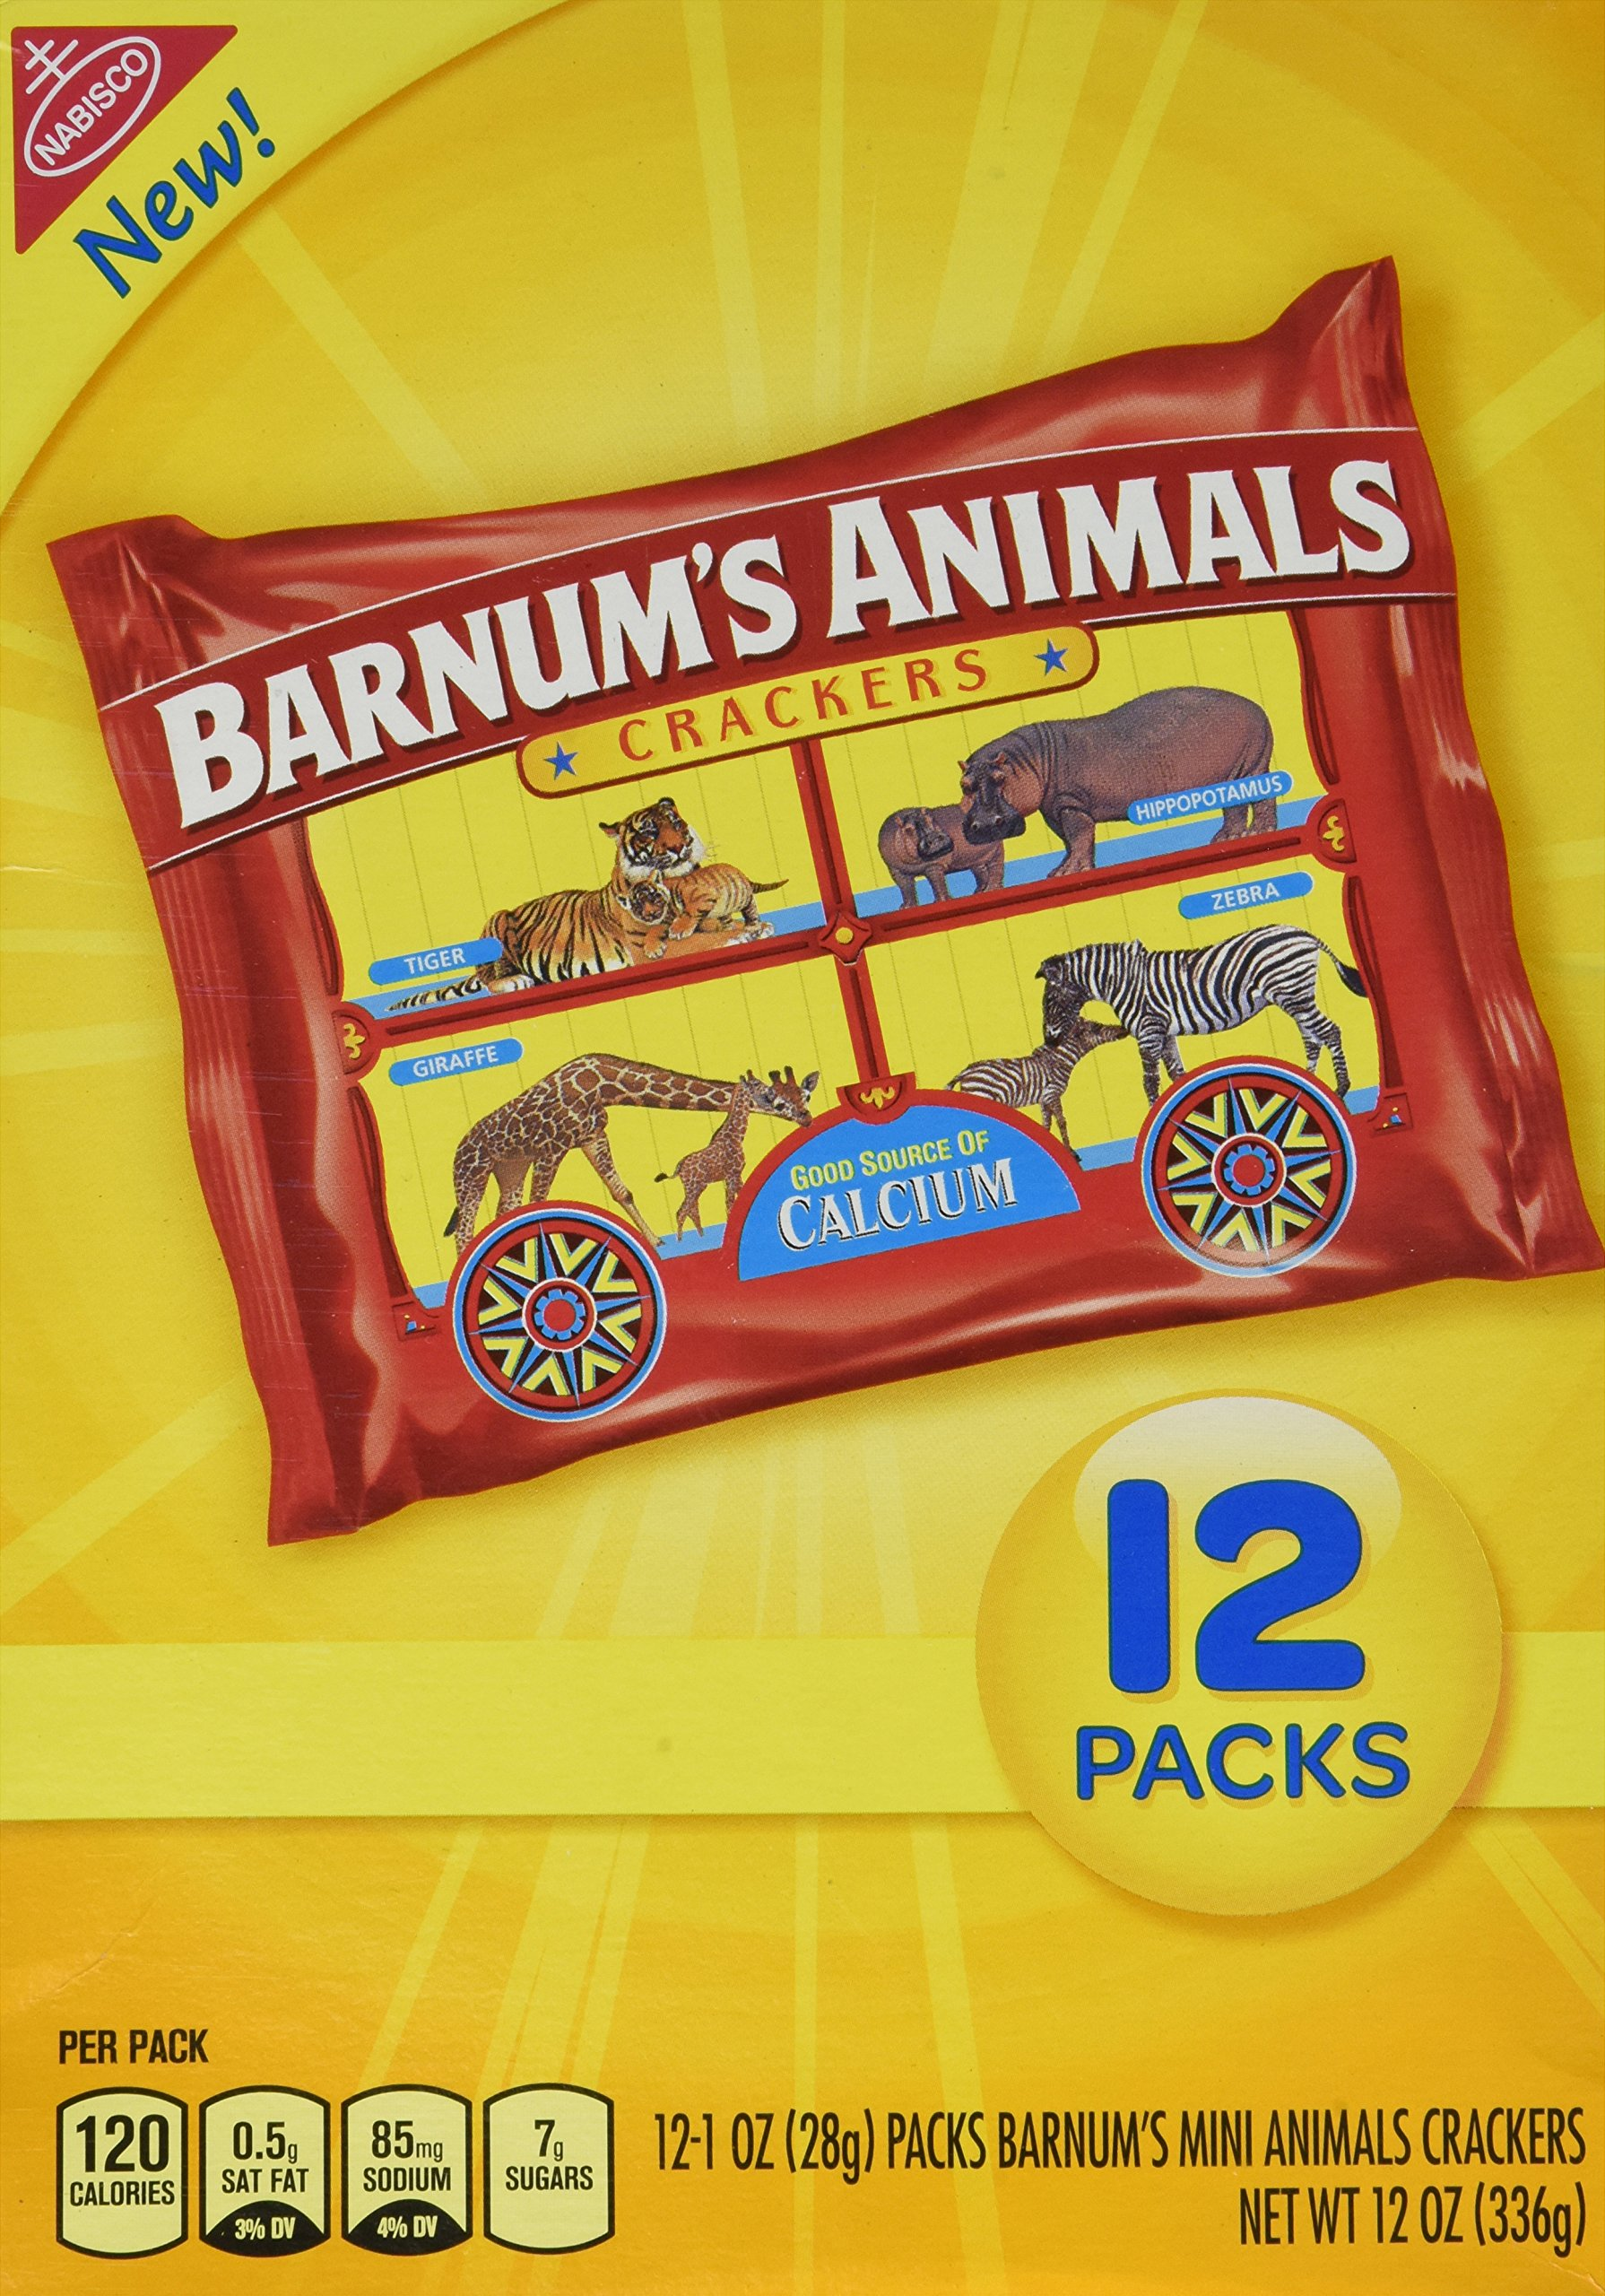 Barnum's Mini Animals Crackers 12 Pack Box (2- 12 Pack Boxes) by Nabisco